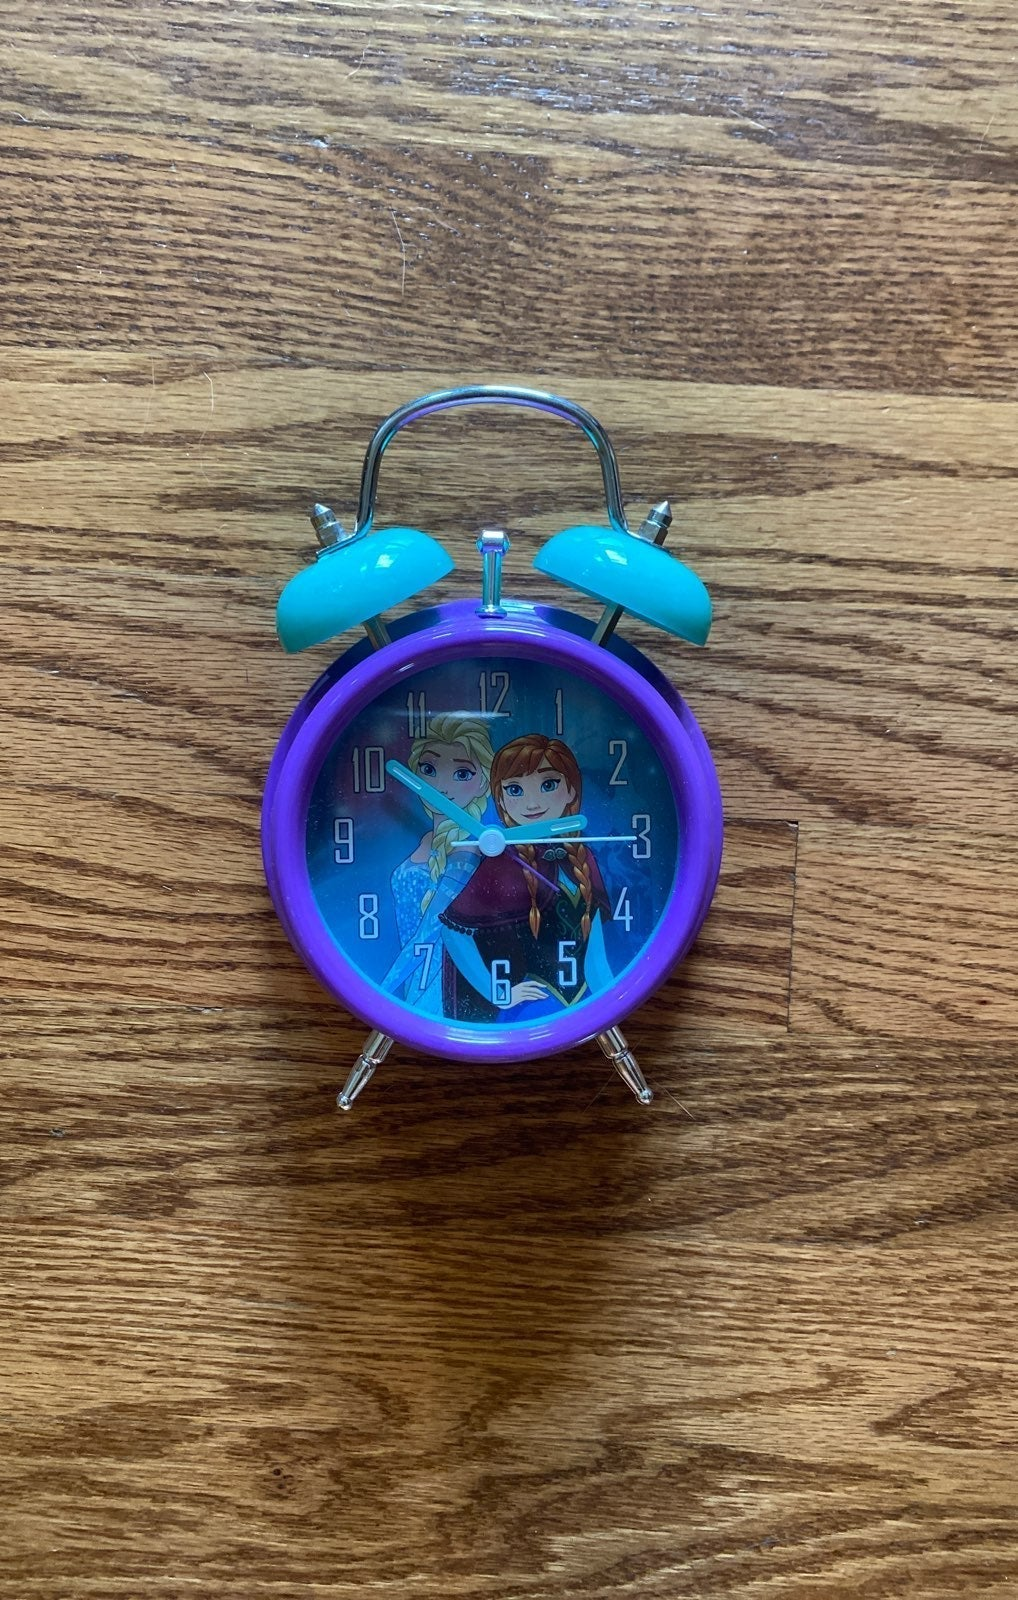 Disney Frozen Alarm Clock